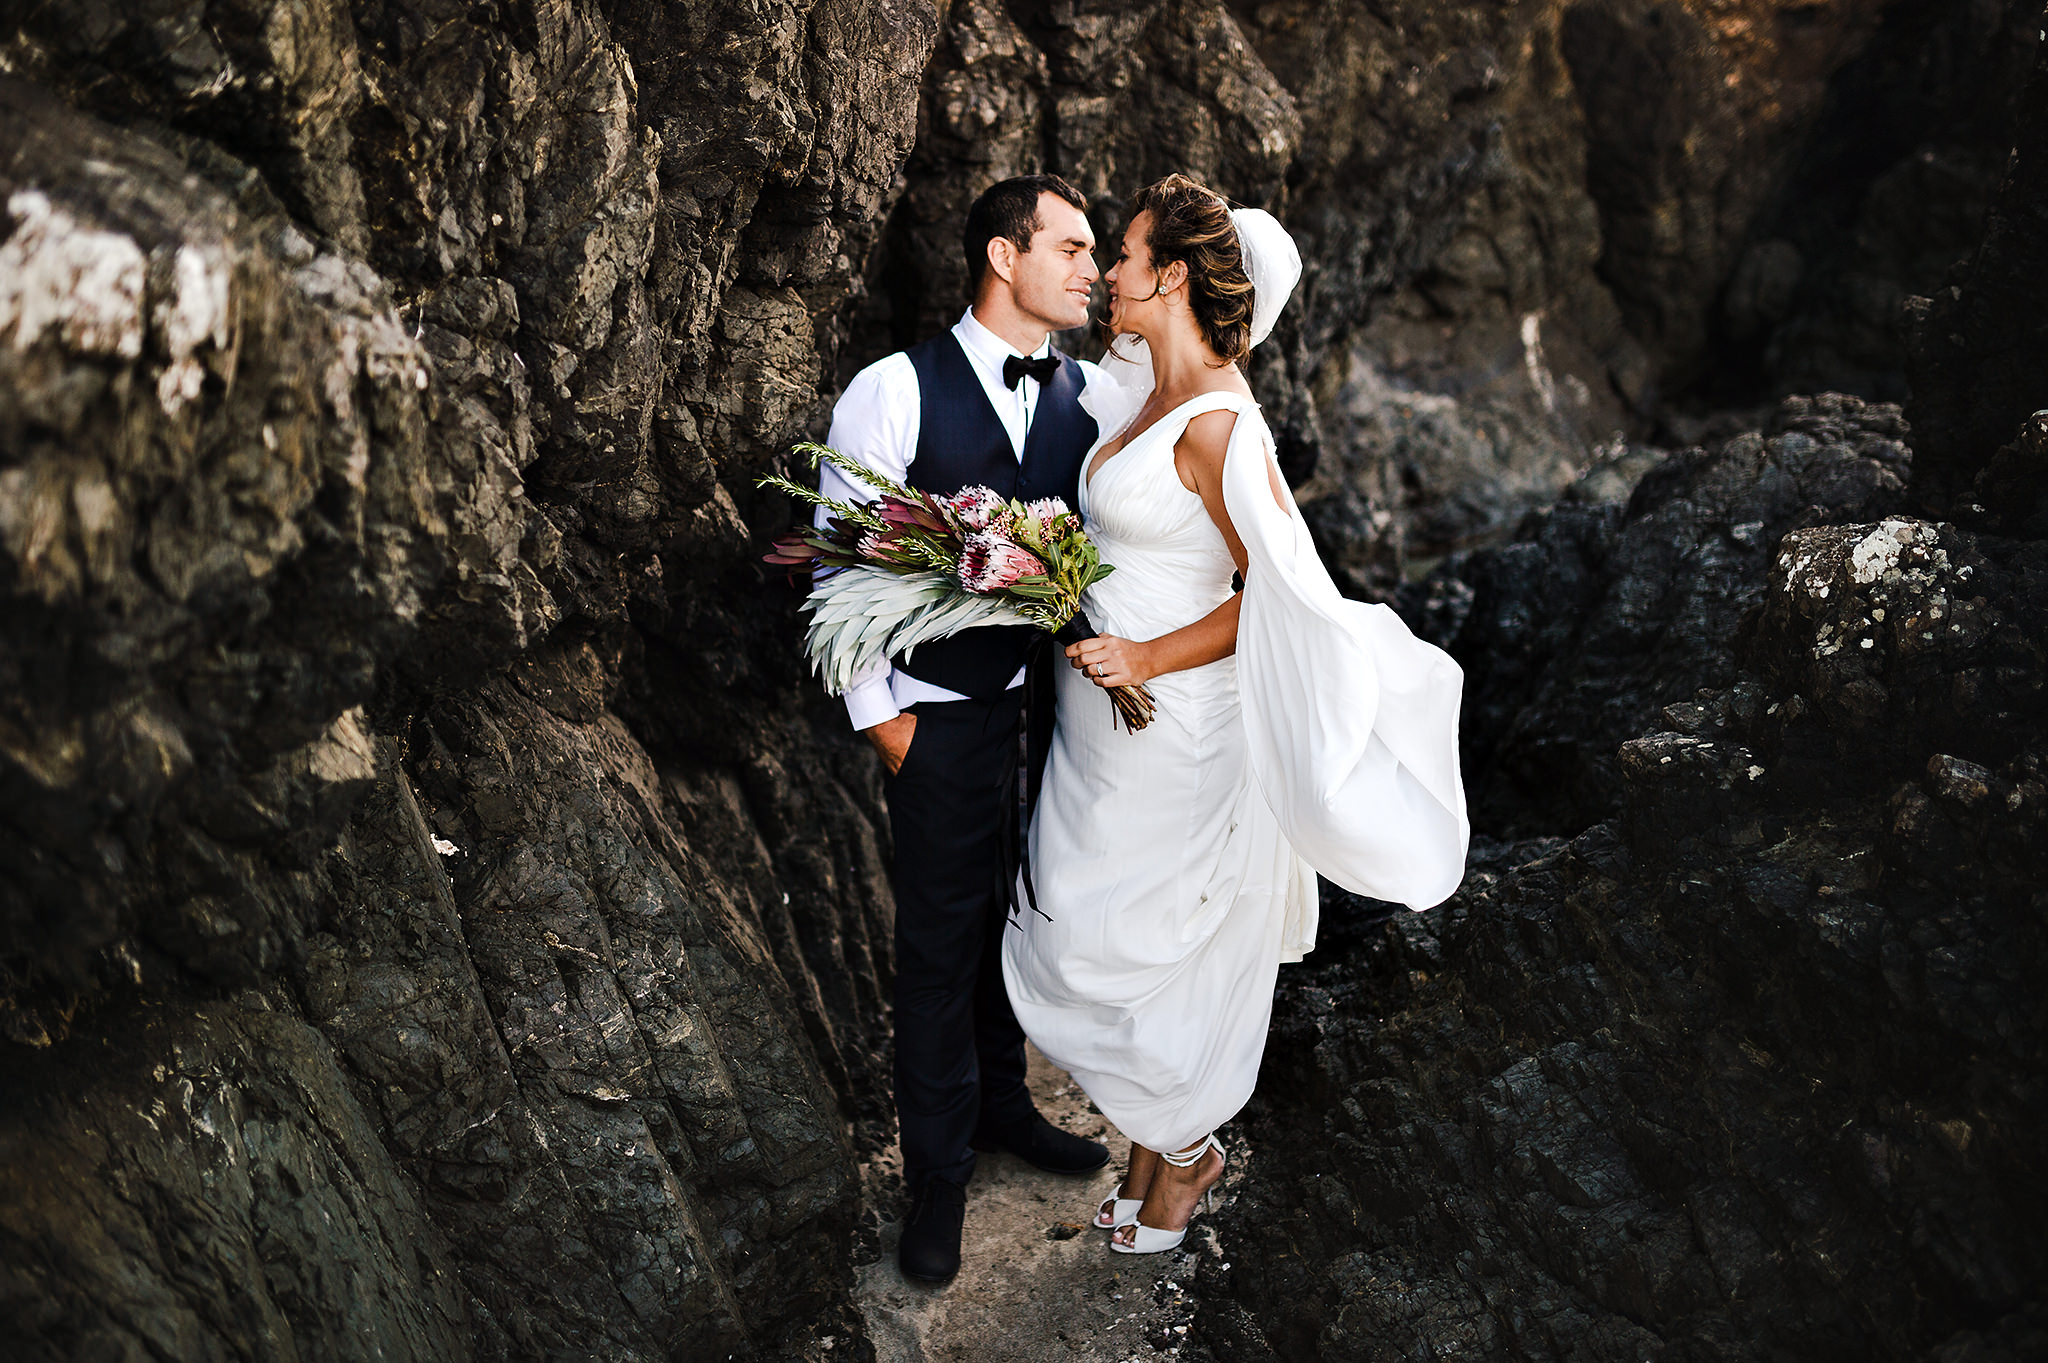 65 whananaki wedding bride and groom amongst rocks.JPG